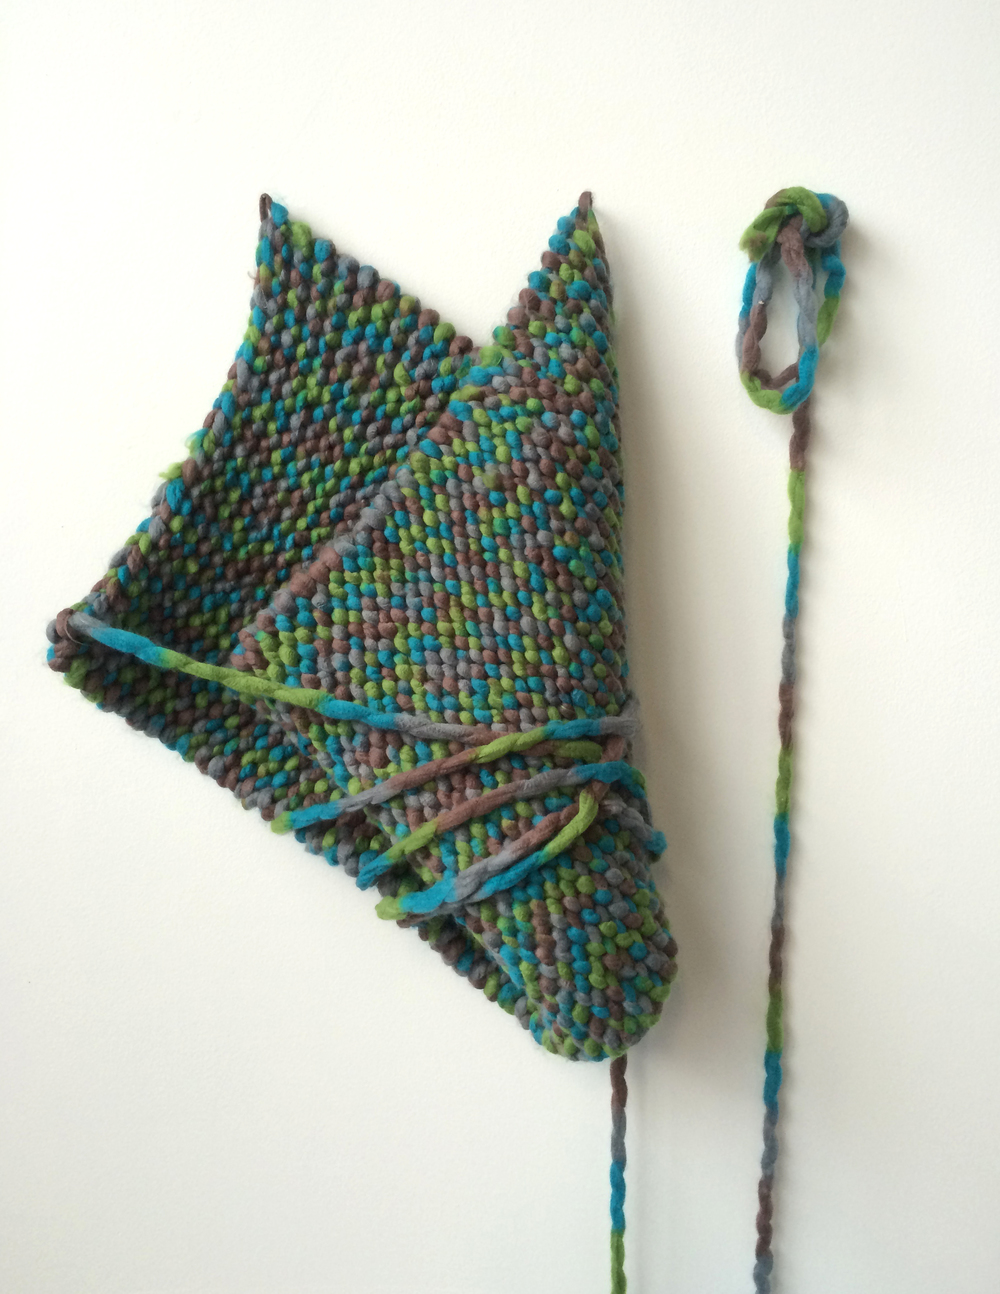 Maude Findlay  | 2015  | hand knitted acrylic yarn | 40 x 15